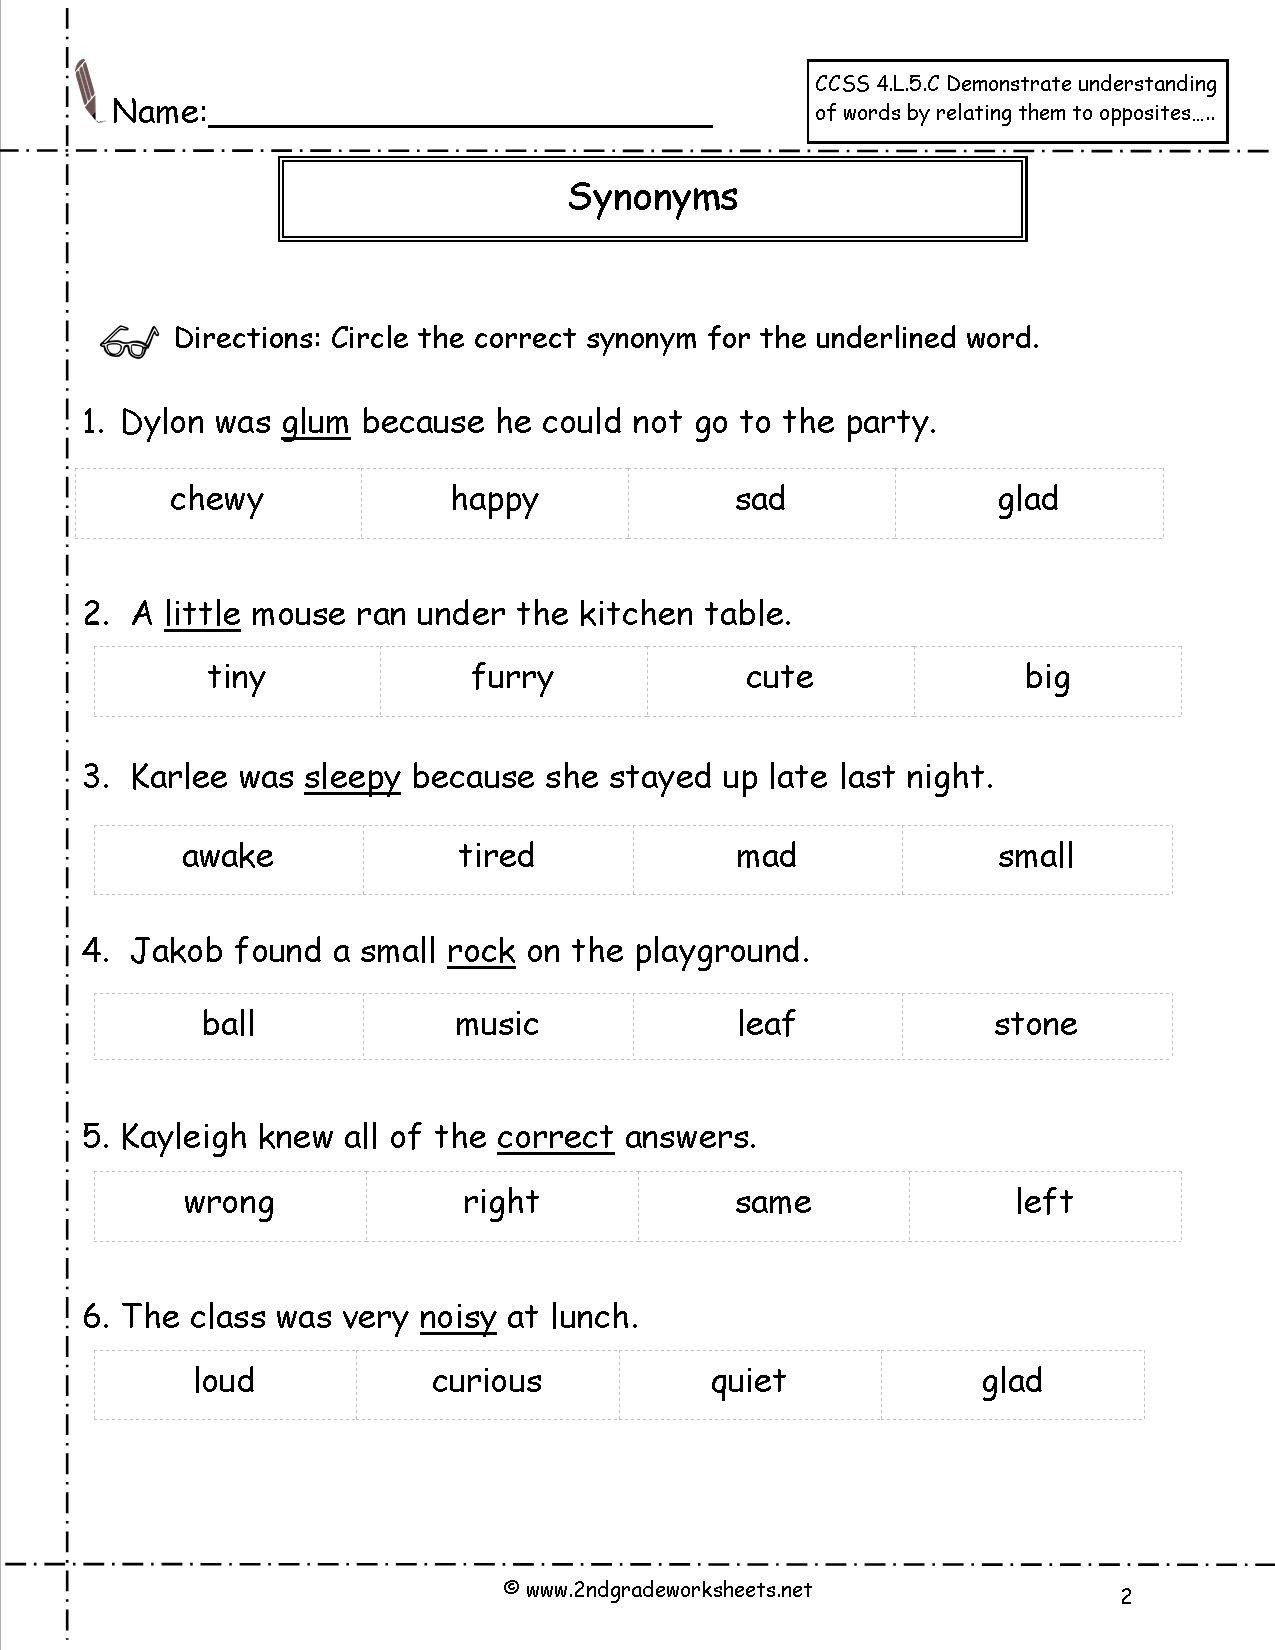 Context Clues Worksheets Second Grade Synonyms and Antonyms Worksheets Antonym for Third Grade